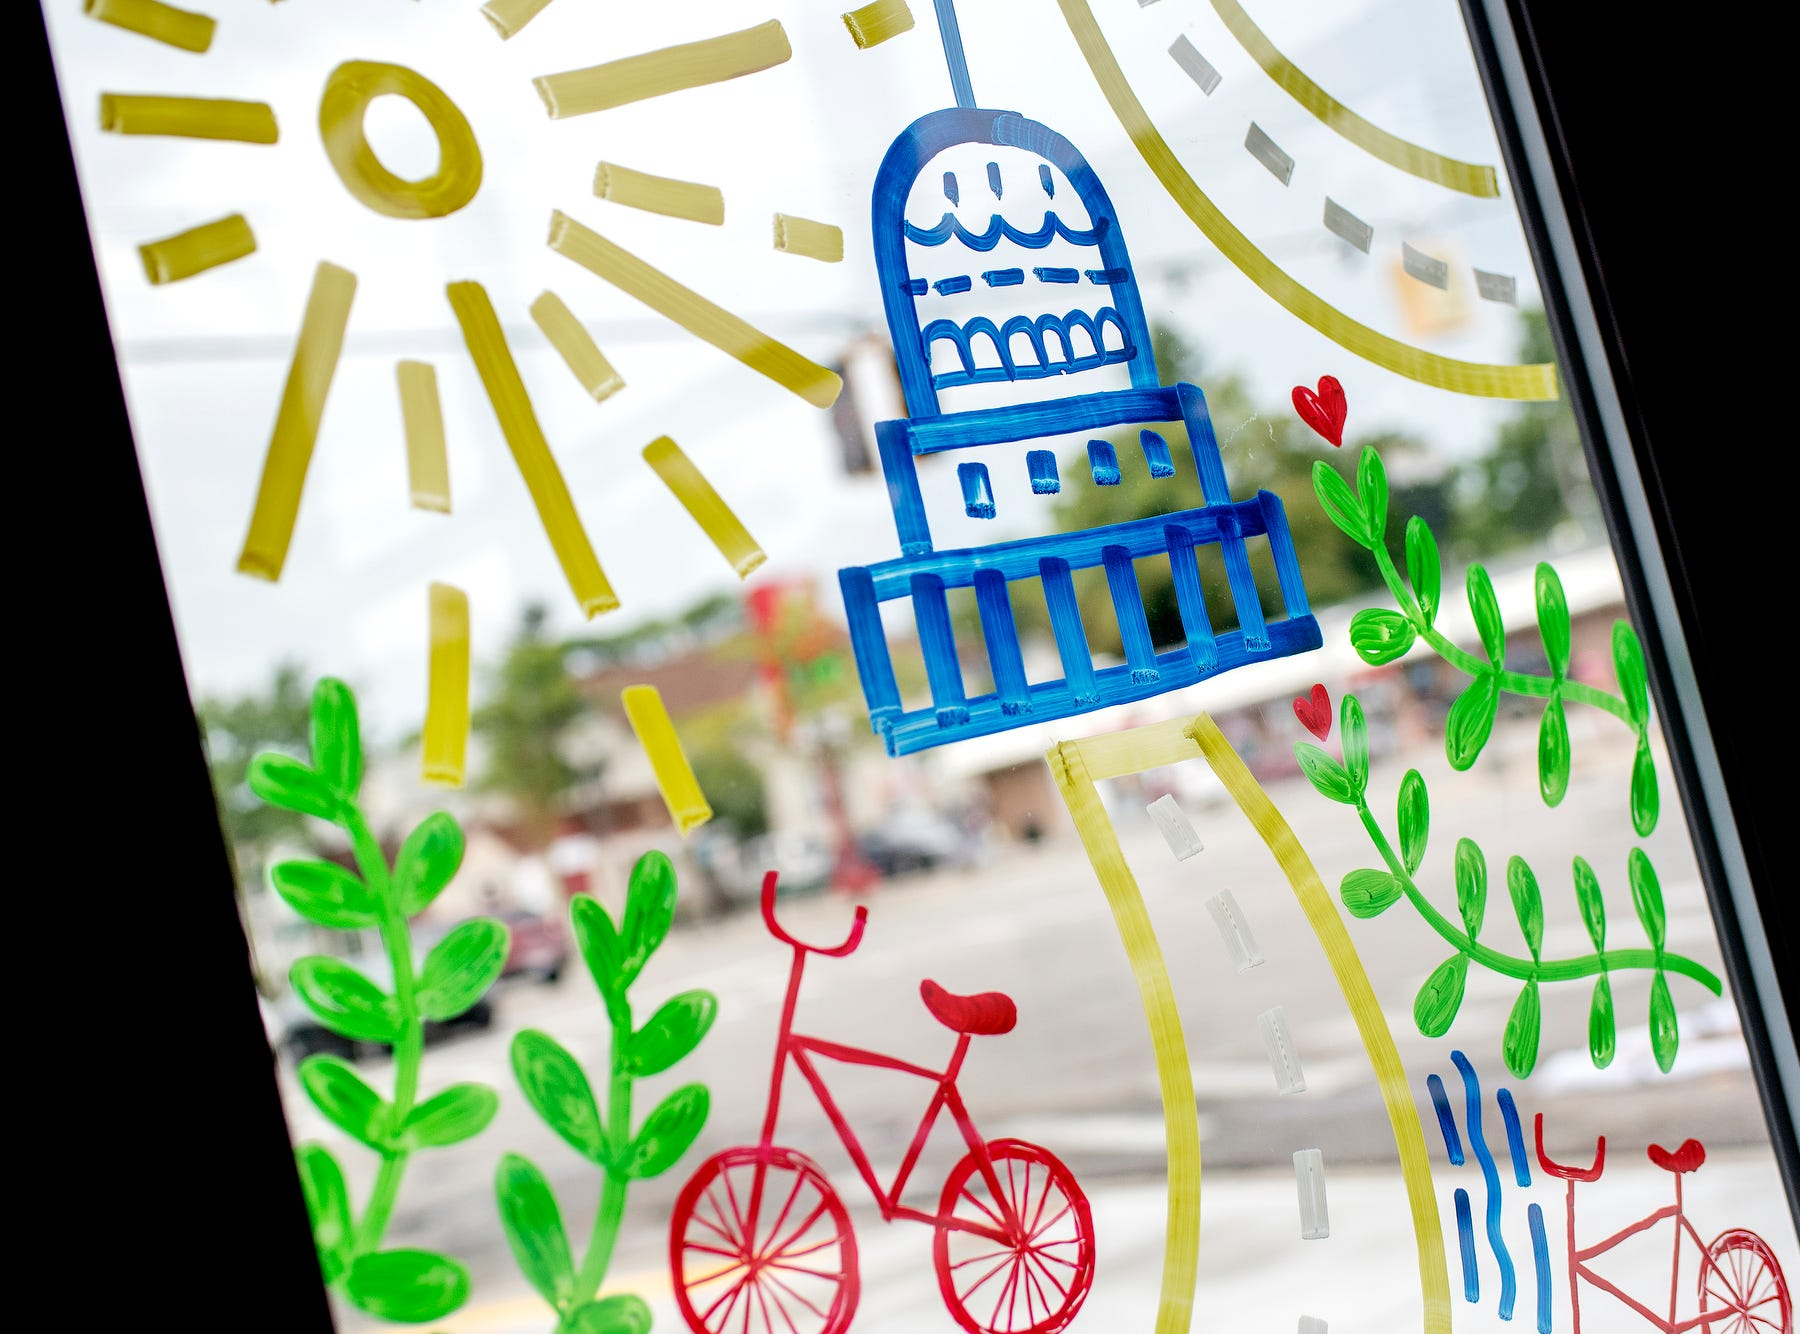 Artwork promoting 'Imagine the Avenue' covers the windows on Monday, Aug. 6, 2018, at The Venue on Michigan Avenue in Lansing. From Aug. 6-11, the 2000 block of Michigan Avenue will be displaying temporary street design changes including protected bike lanes, expanded sidewalks and enhanced bus stops.